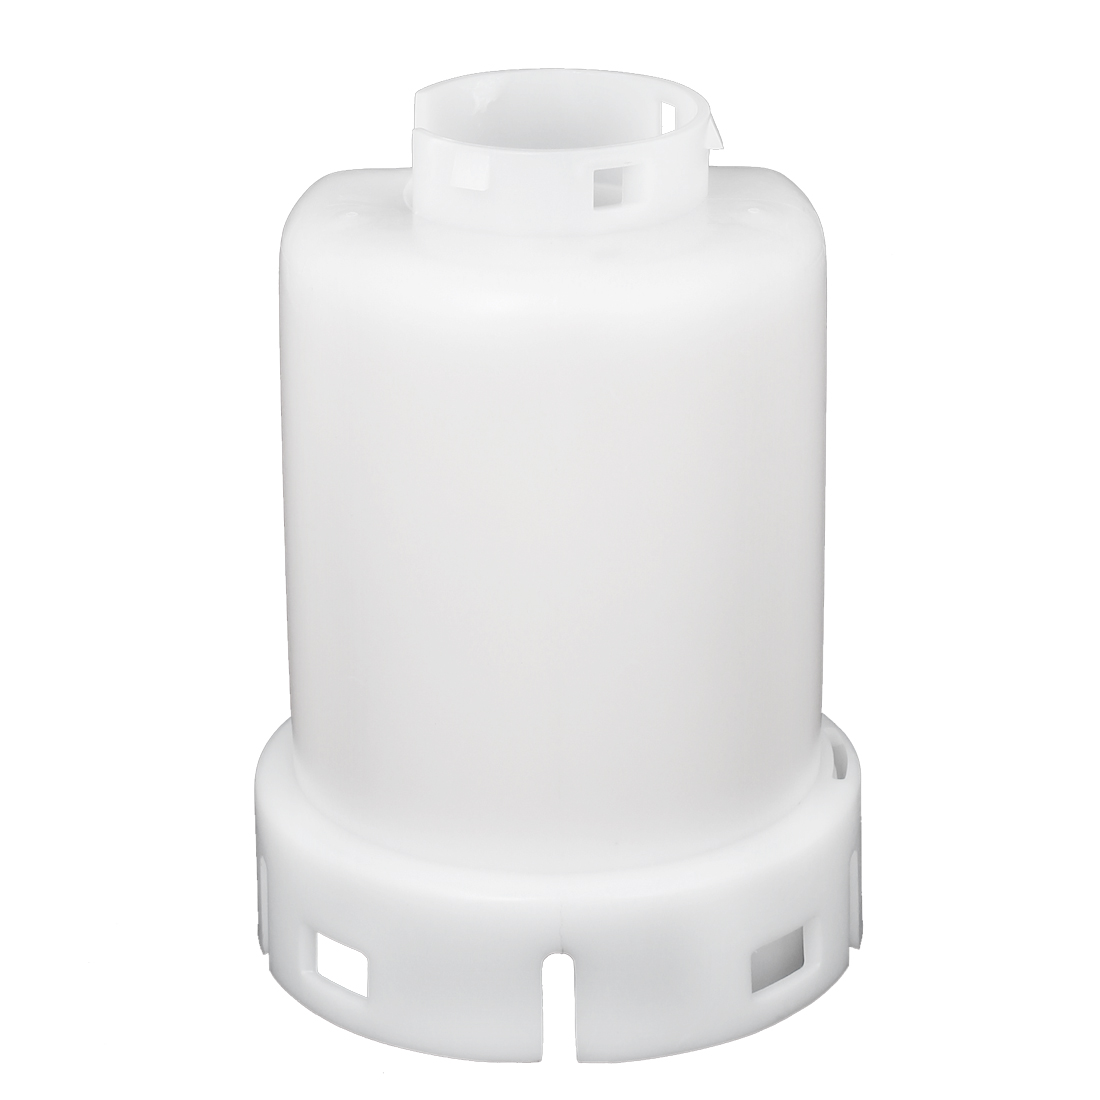 Vehicle Car White Plastic Oil Fuel Filter Assembly 23300-23040